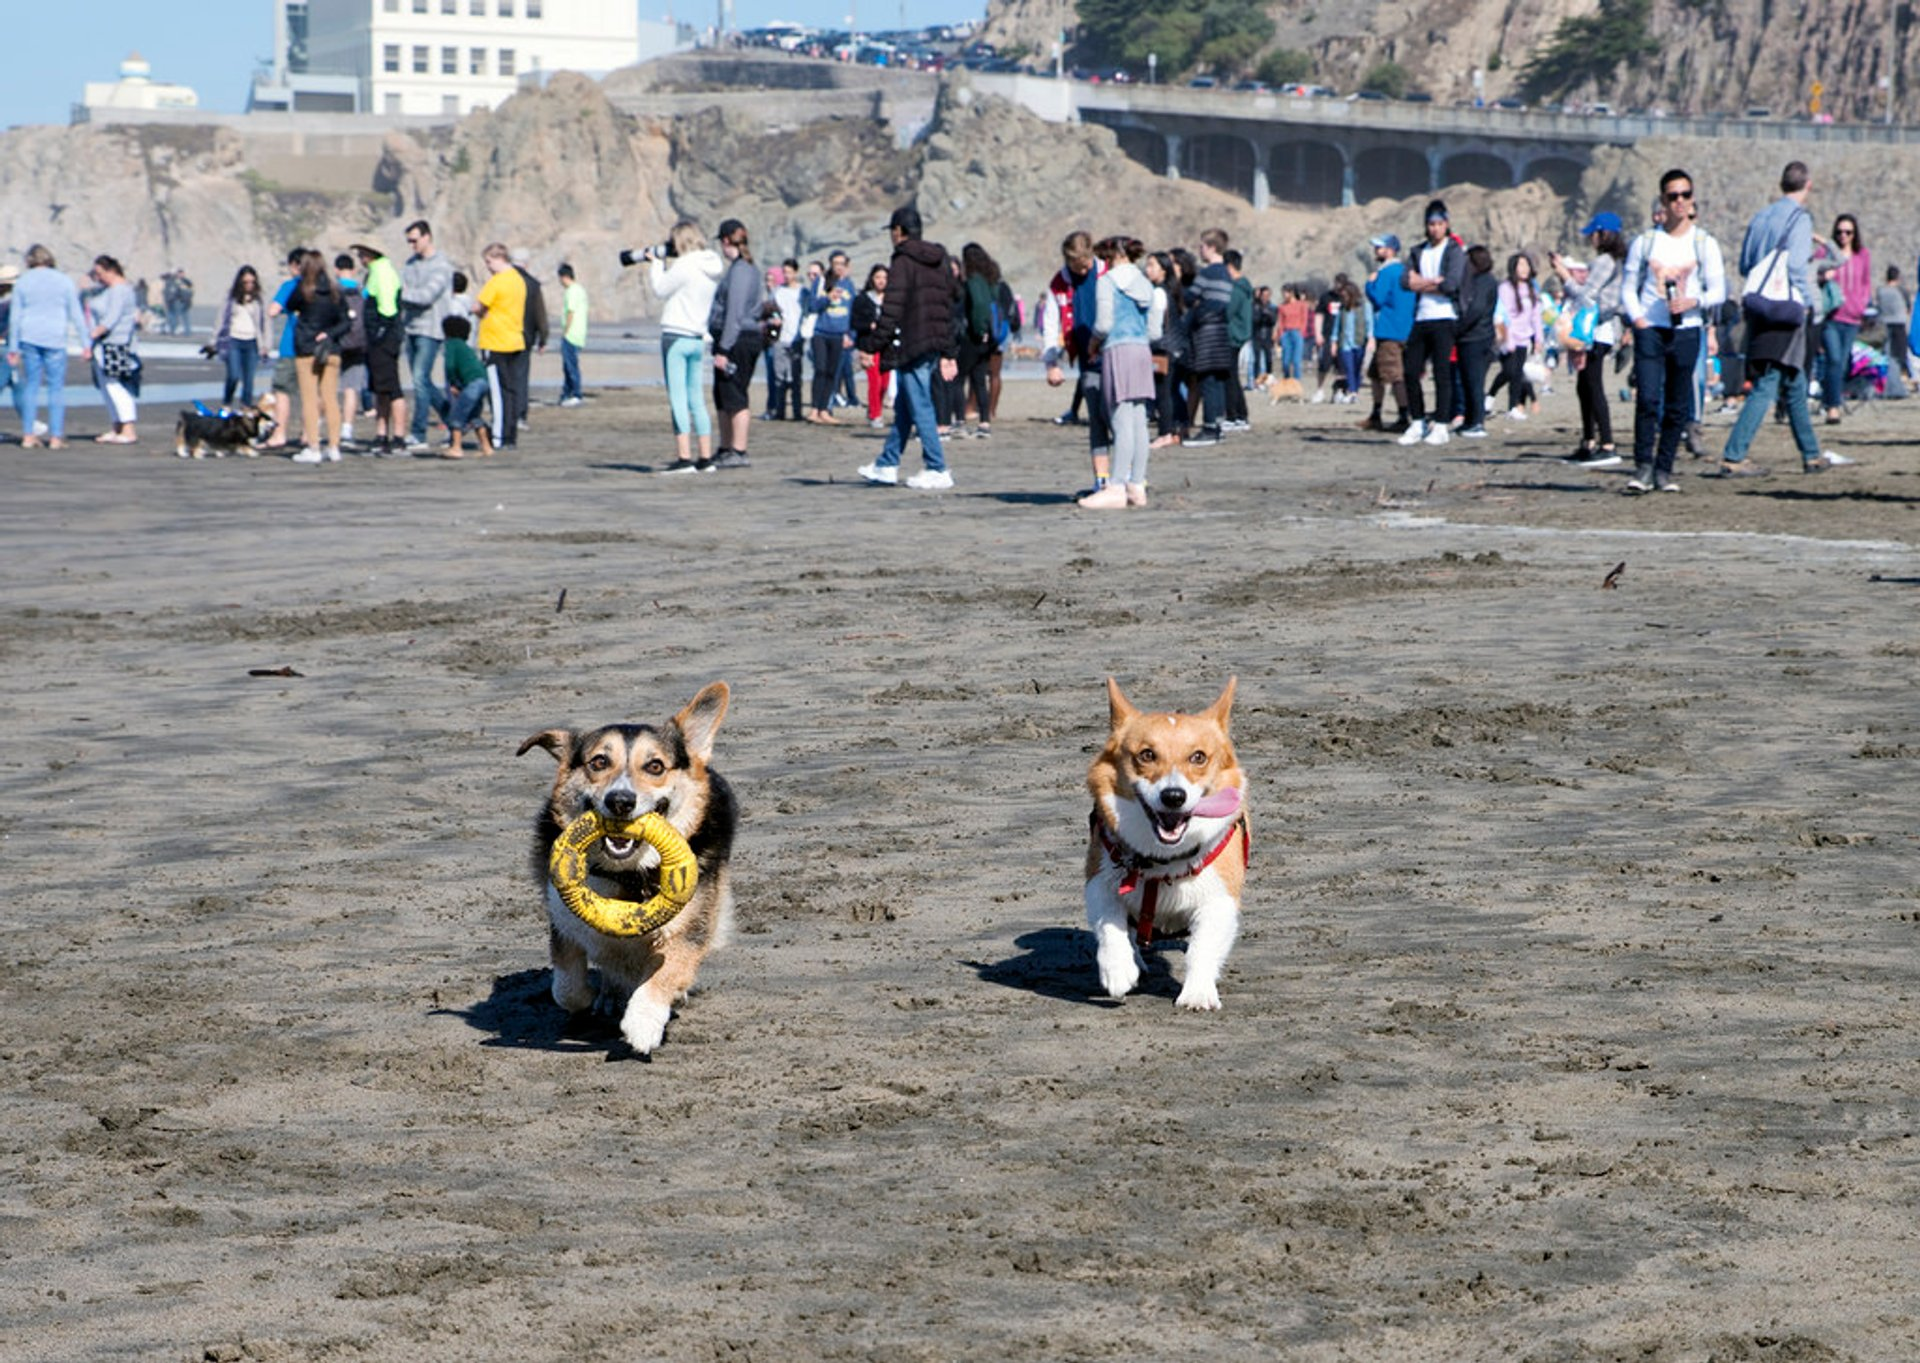 Corgi Con in San Francisco - Best Season 2019